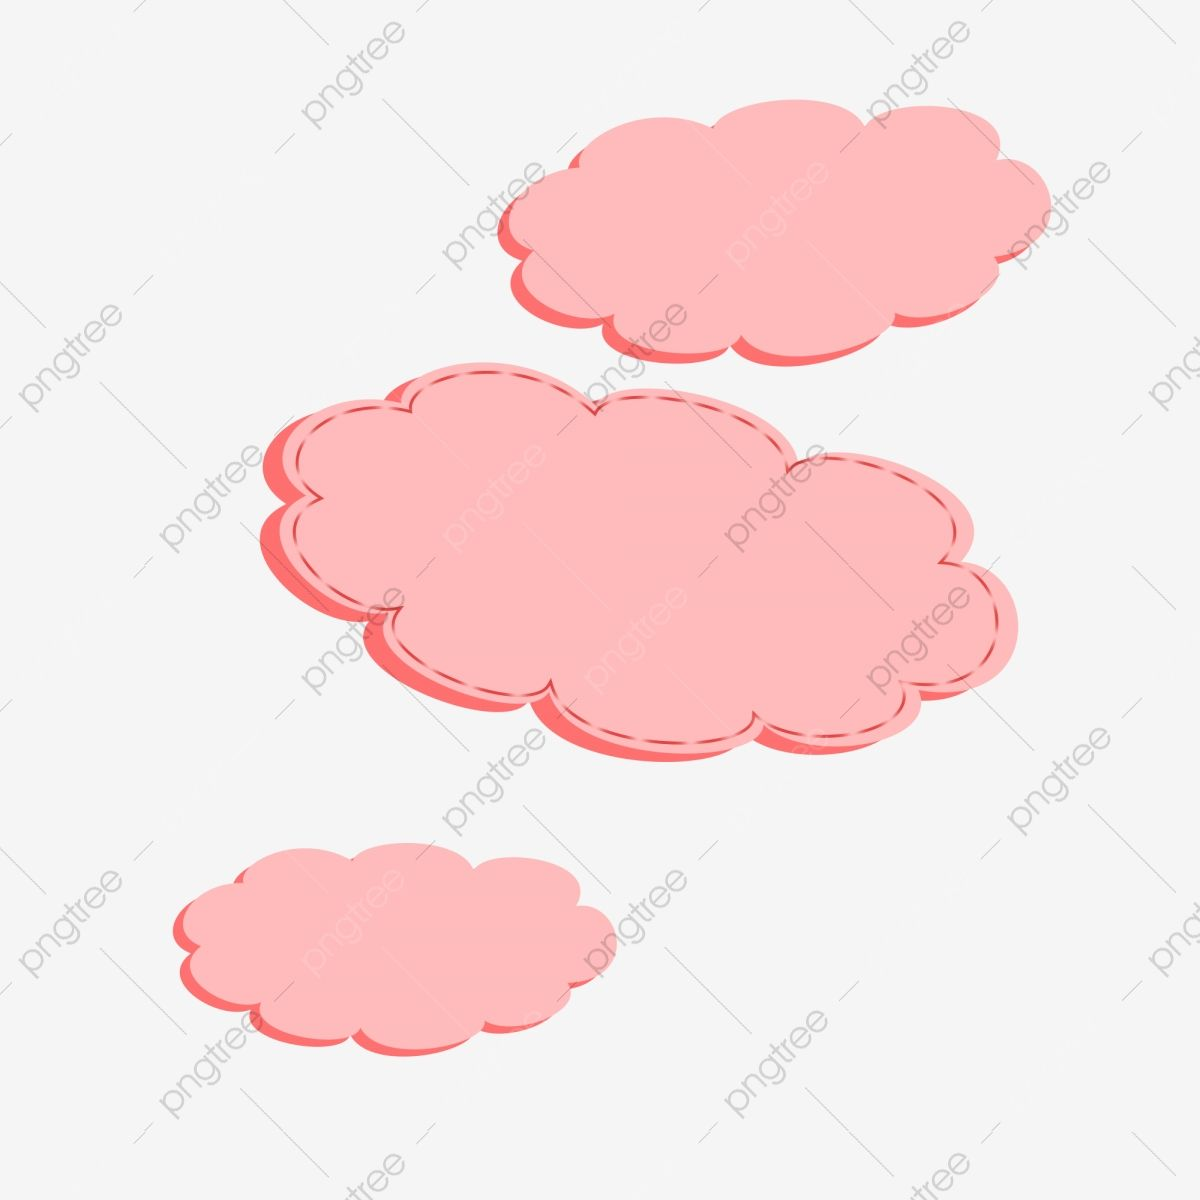 Pink Cloud Cute Note Paper Pink Cloud Cute Png Transparent Clipart Image And Psd File For Free Download Note Paper Cute Notes Pink Clouds